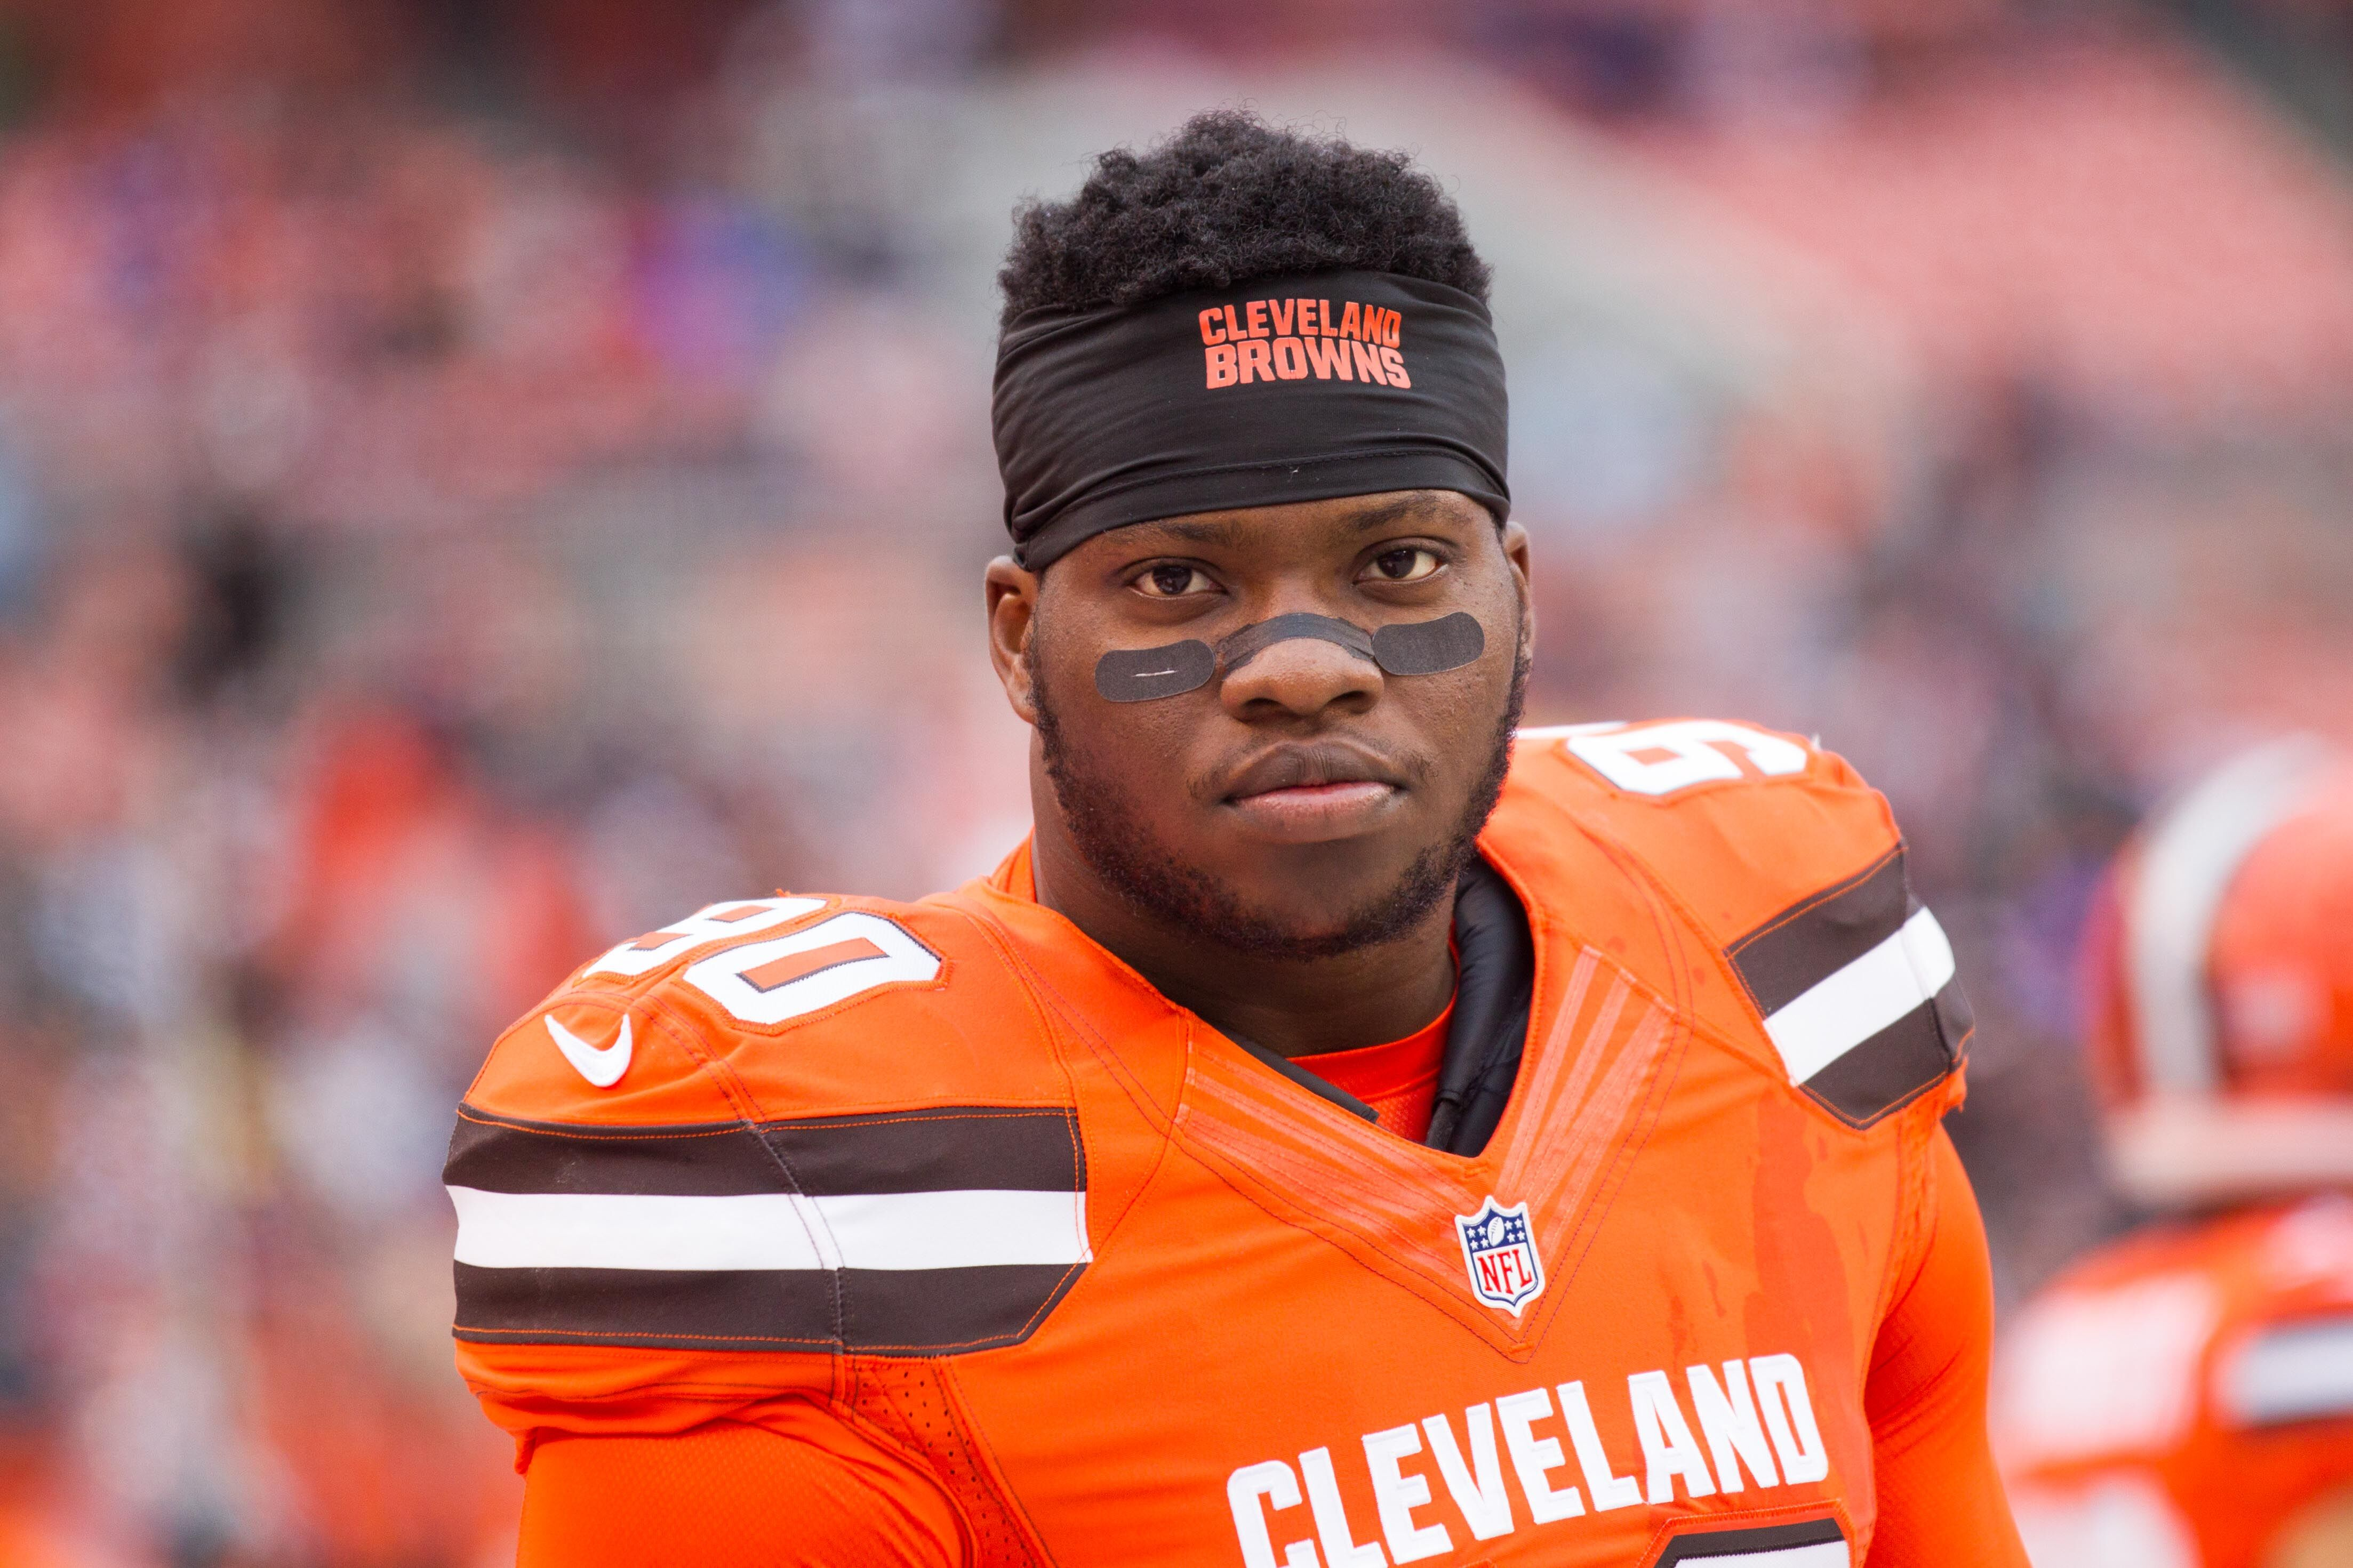 Cleveland Browns: Emmanual Ogbah Working To Build On